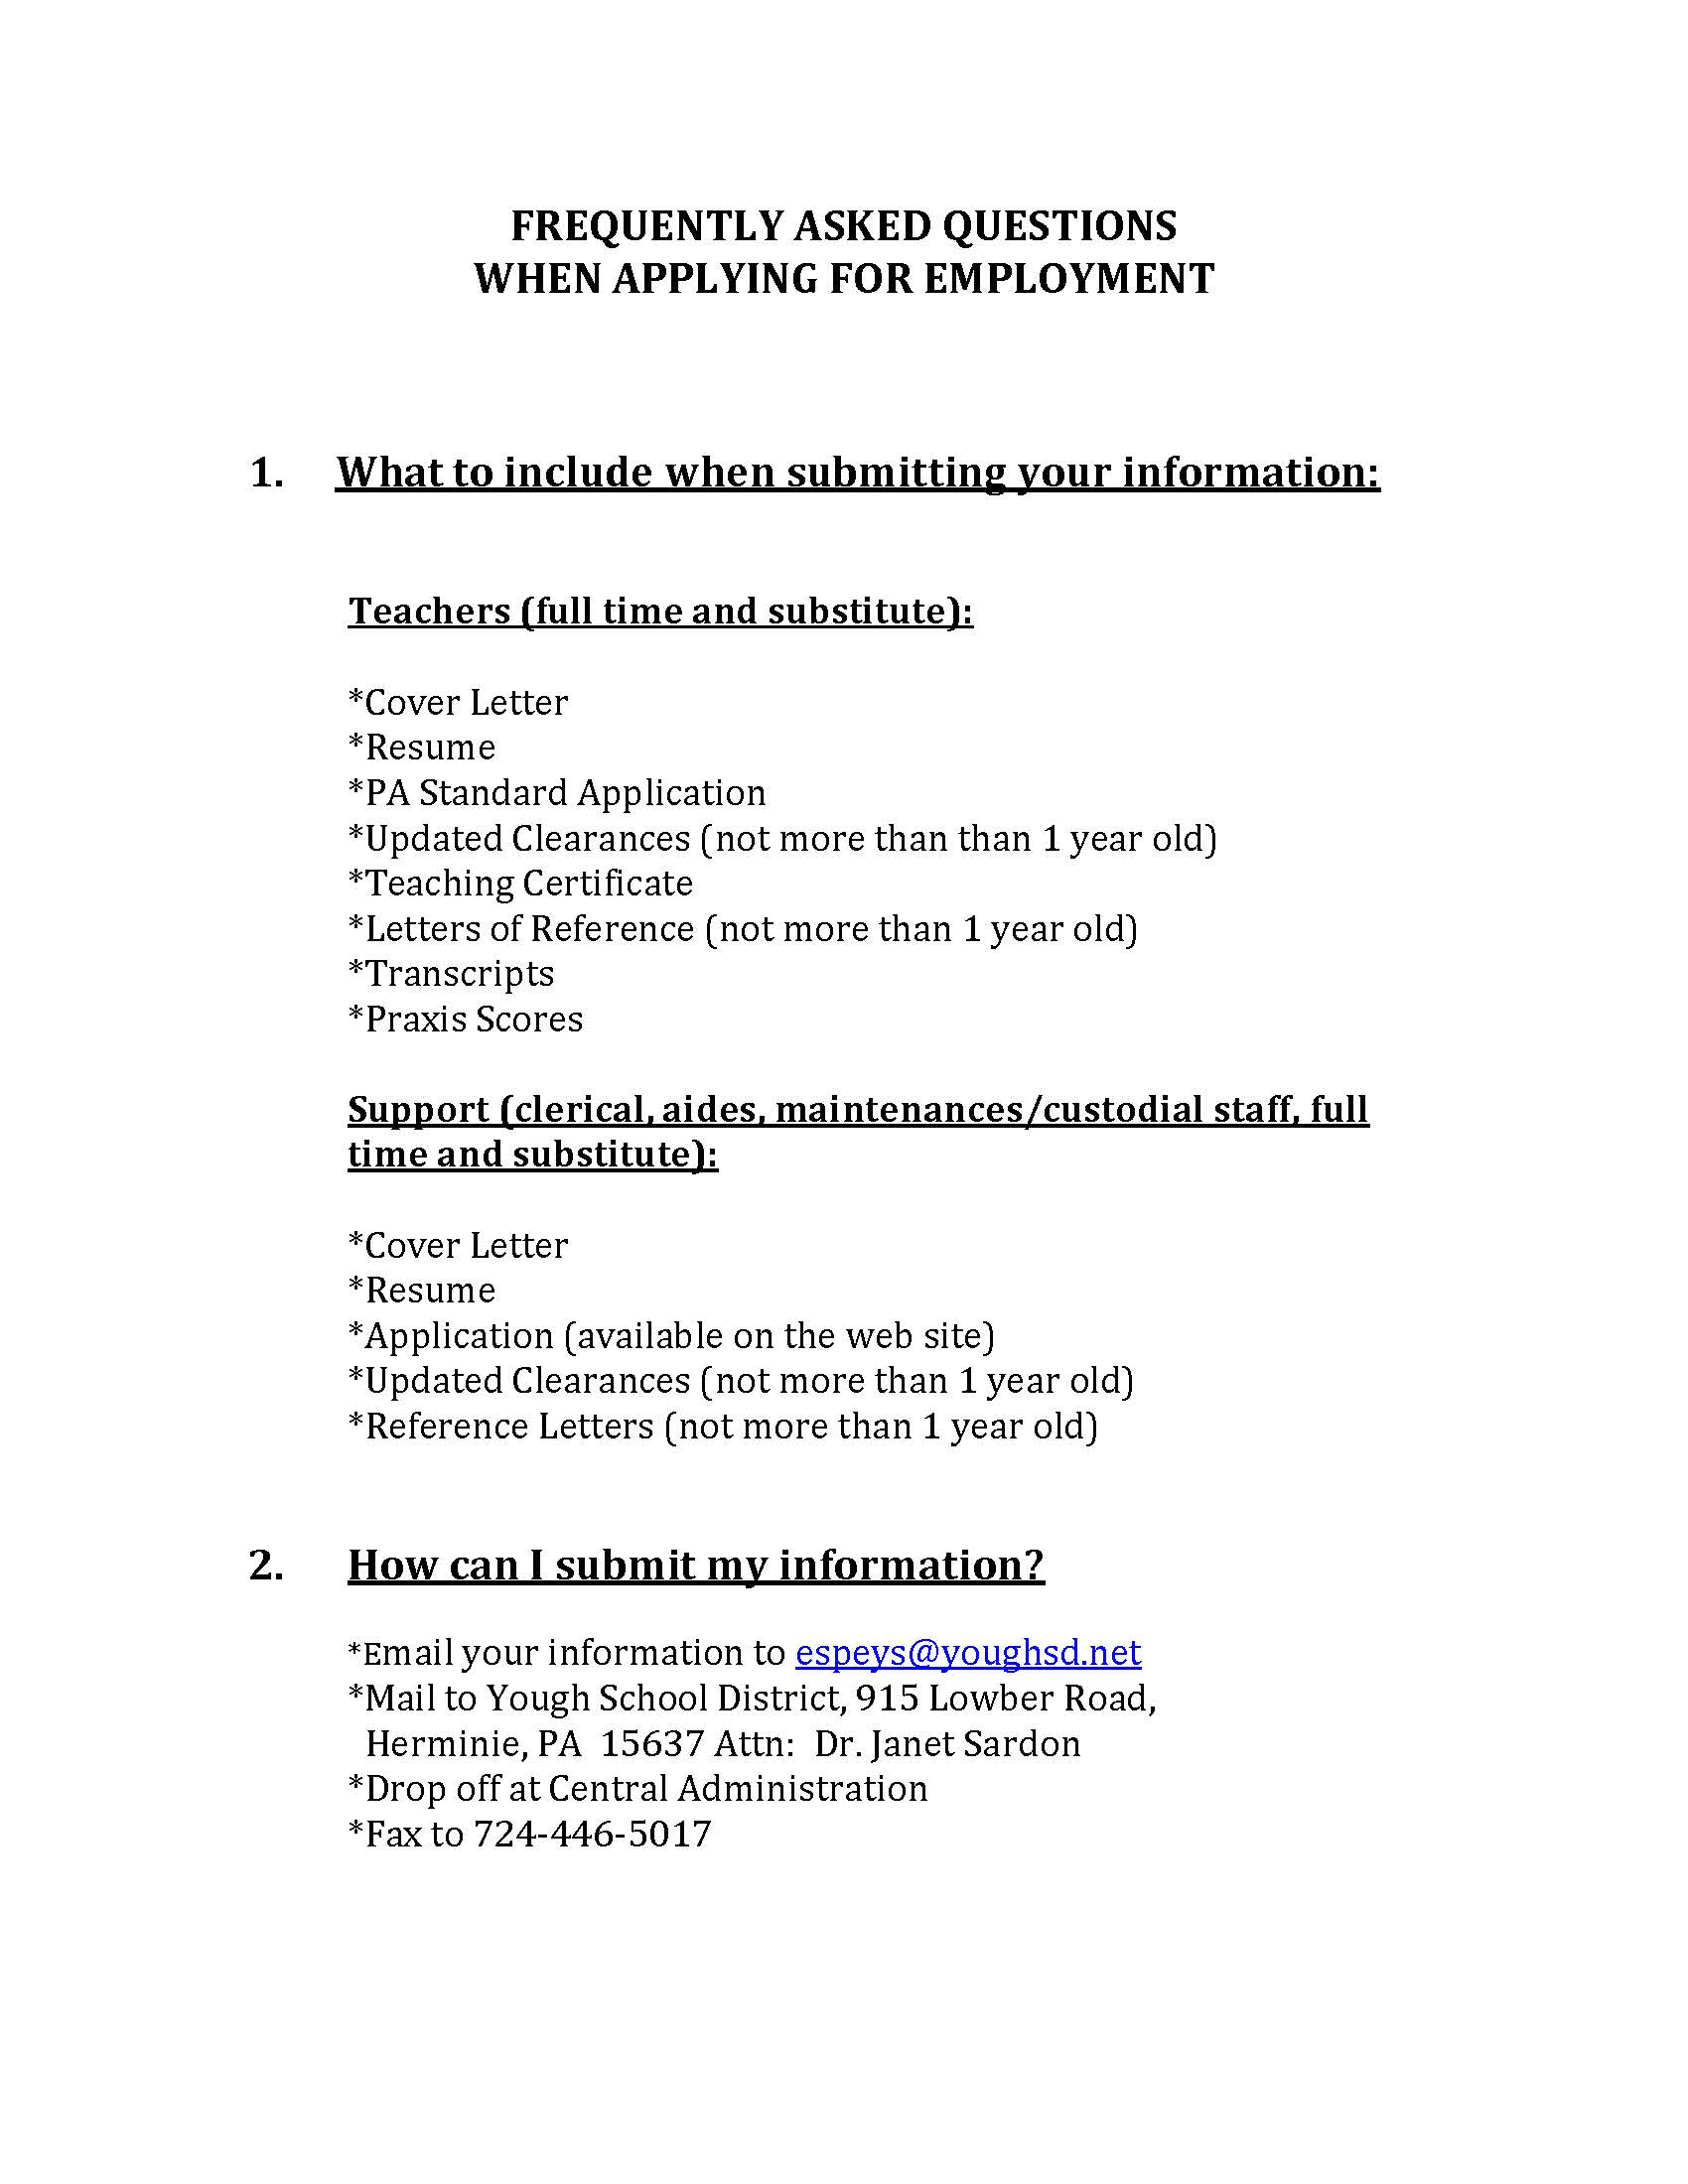 Employment Information Yough School District